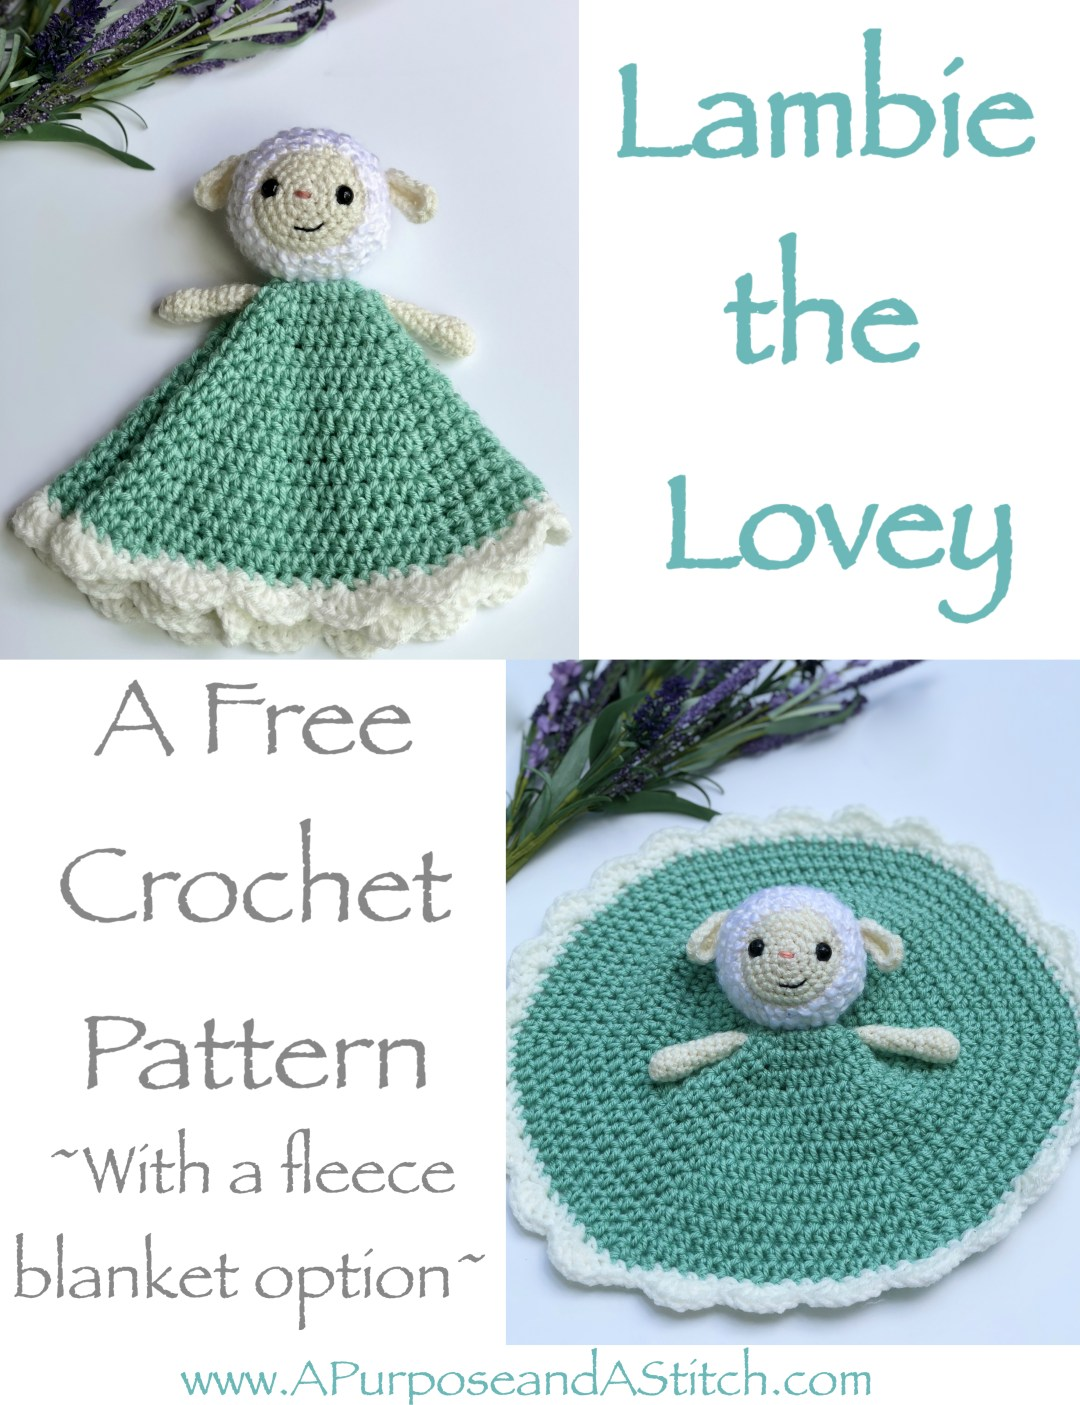 Lambie the Lovey Pattern .jpg